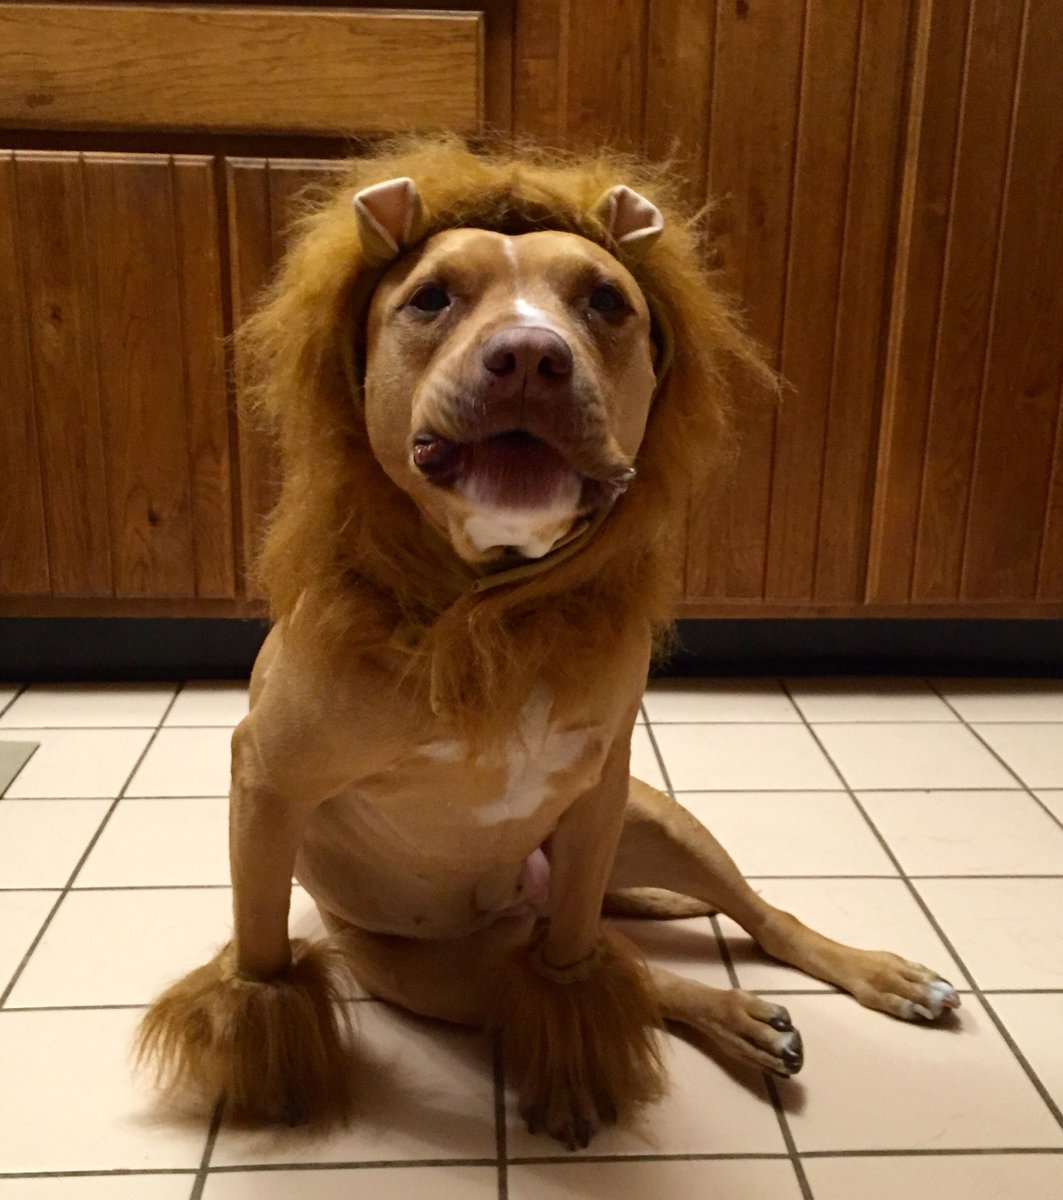 It's been a while since I showed off my pet lion. https://t.co/norbsjJIm5